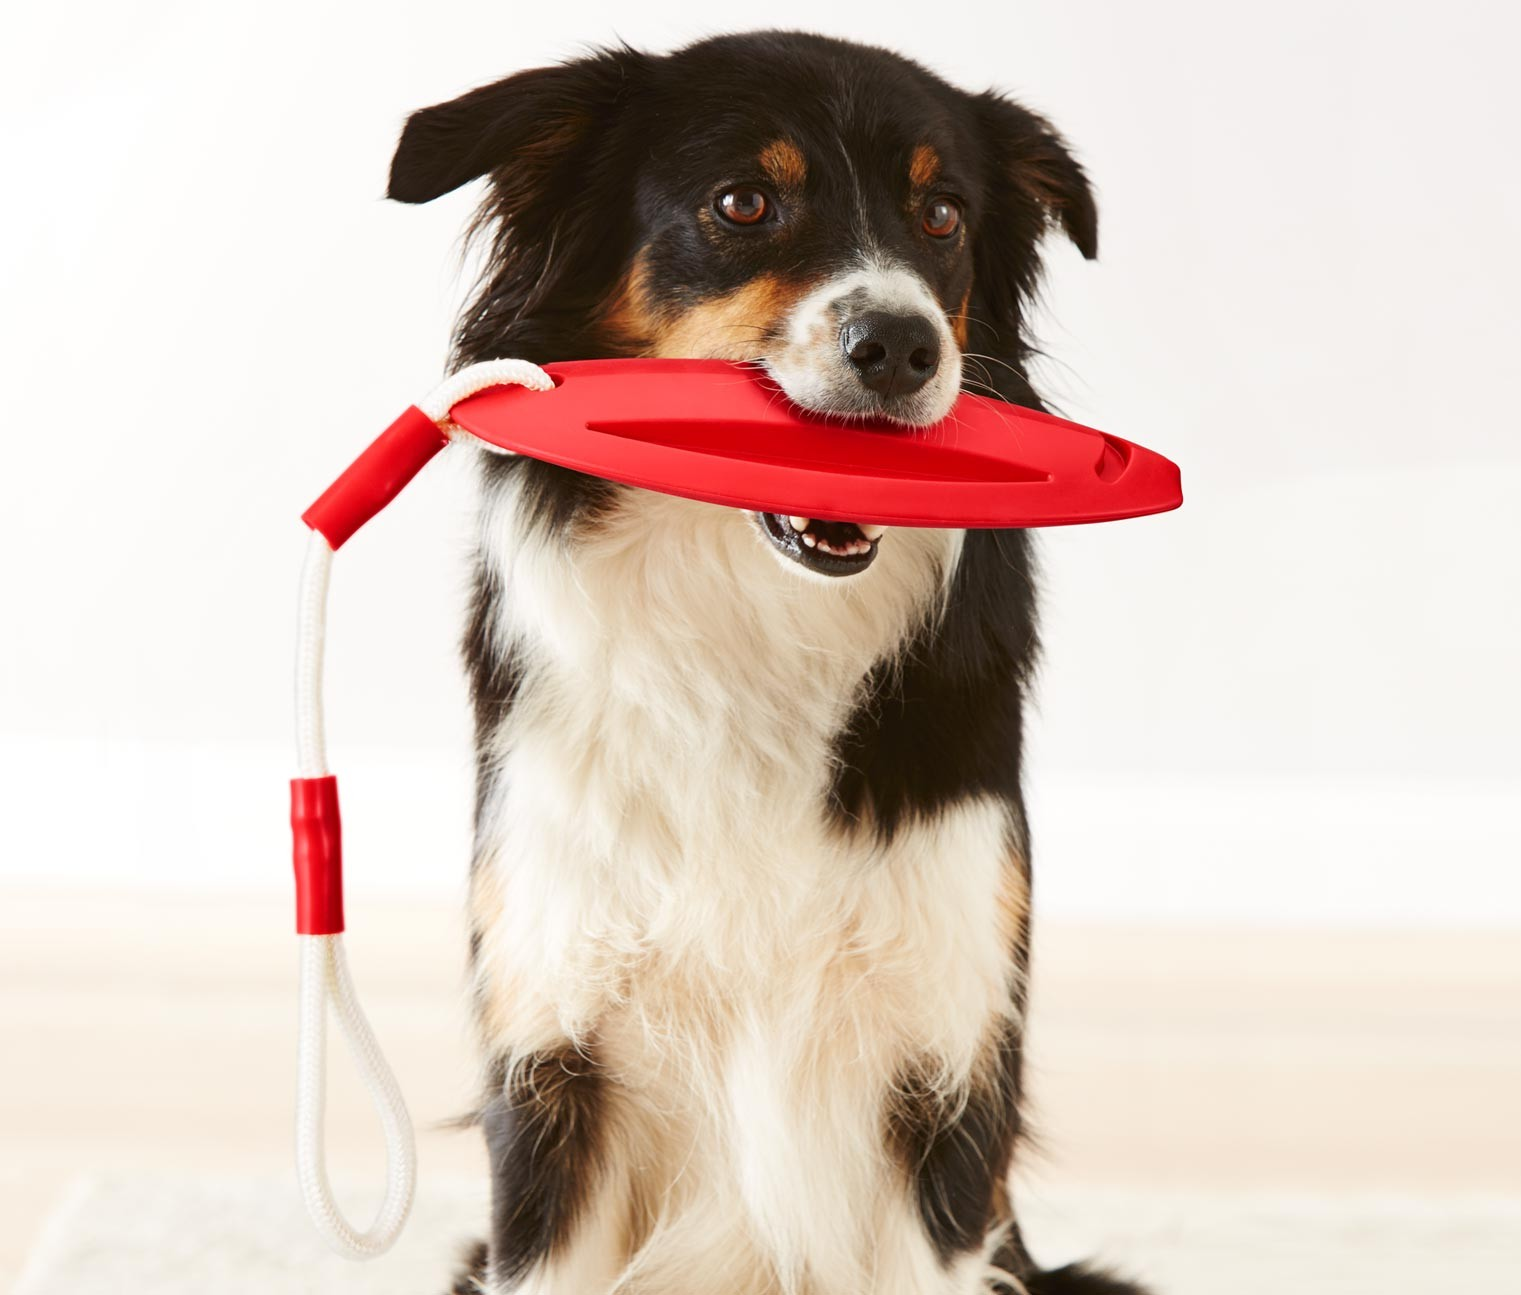 Dog Toy, Red